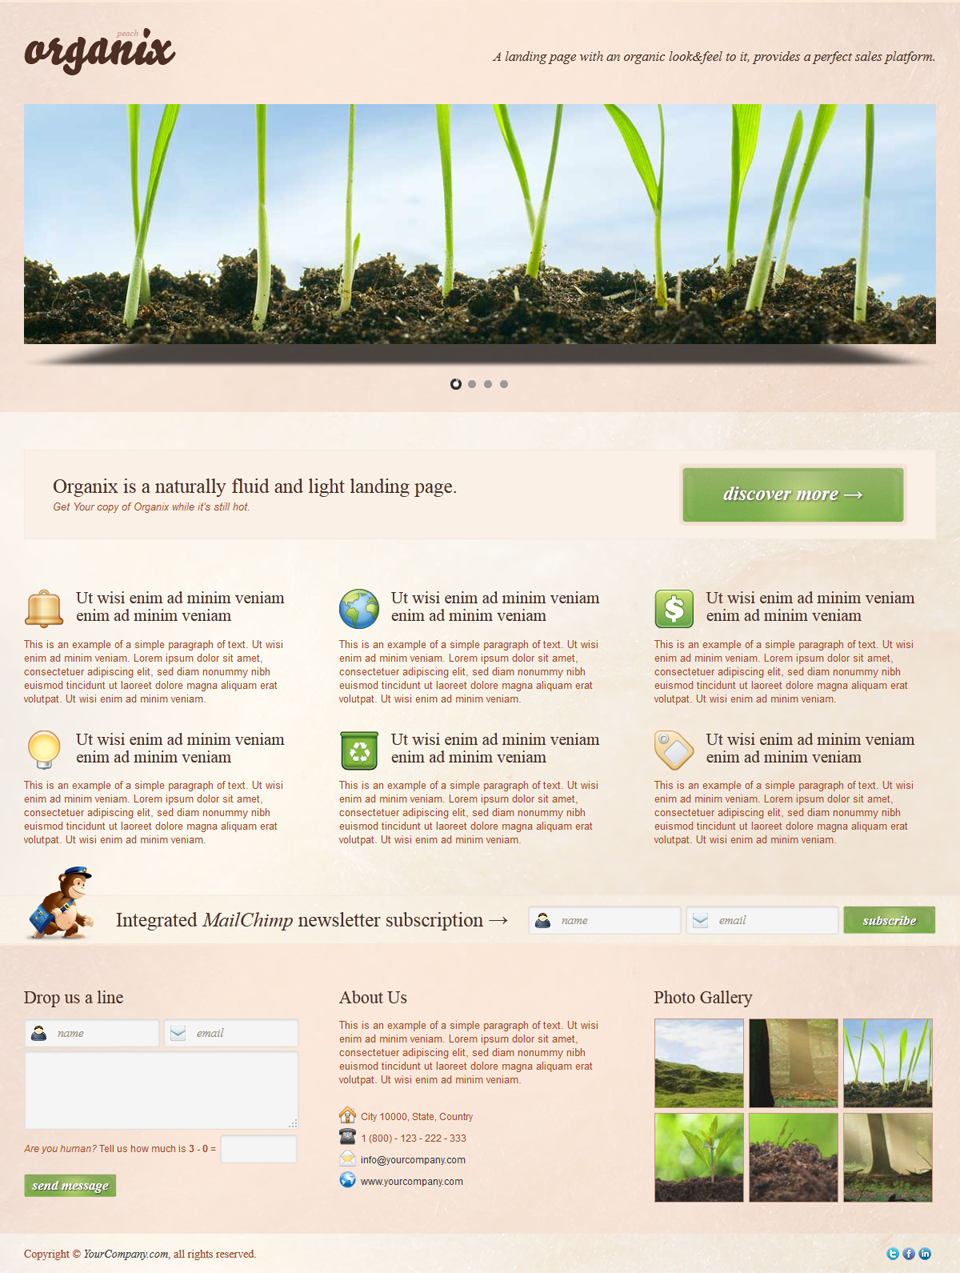 Organix - Simple Product Oriented Landing Page - Organix - Peach 3D Slider